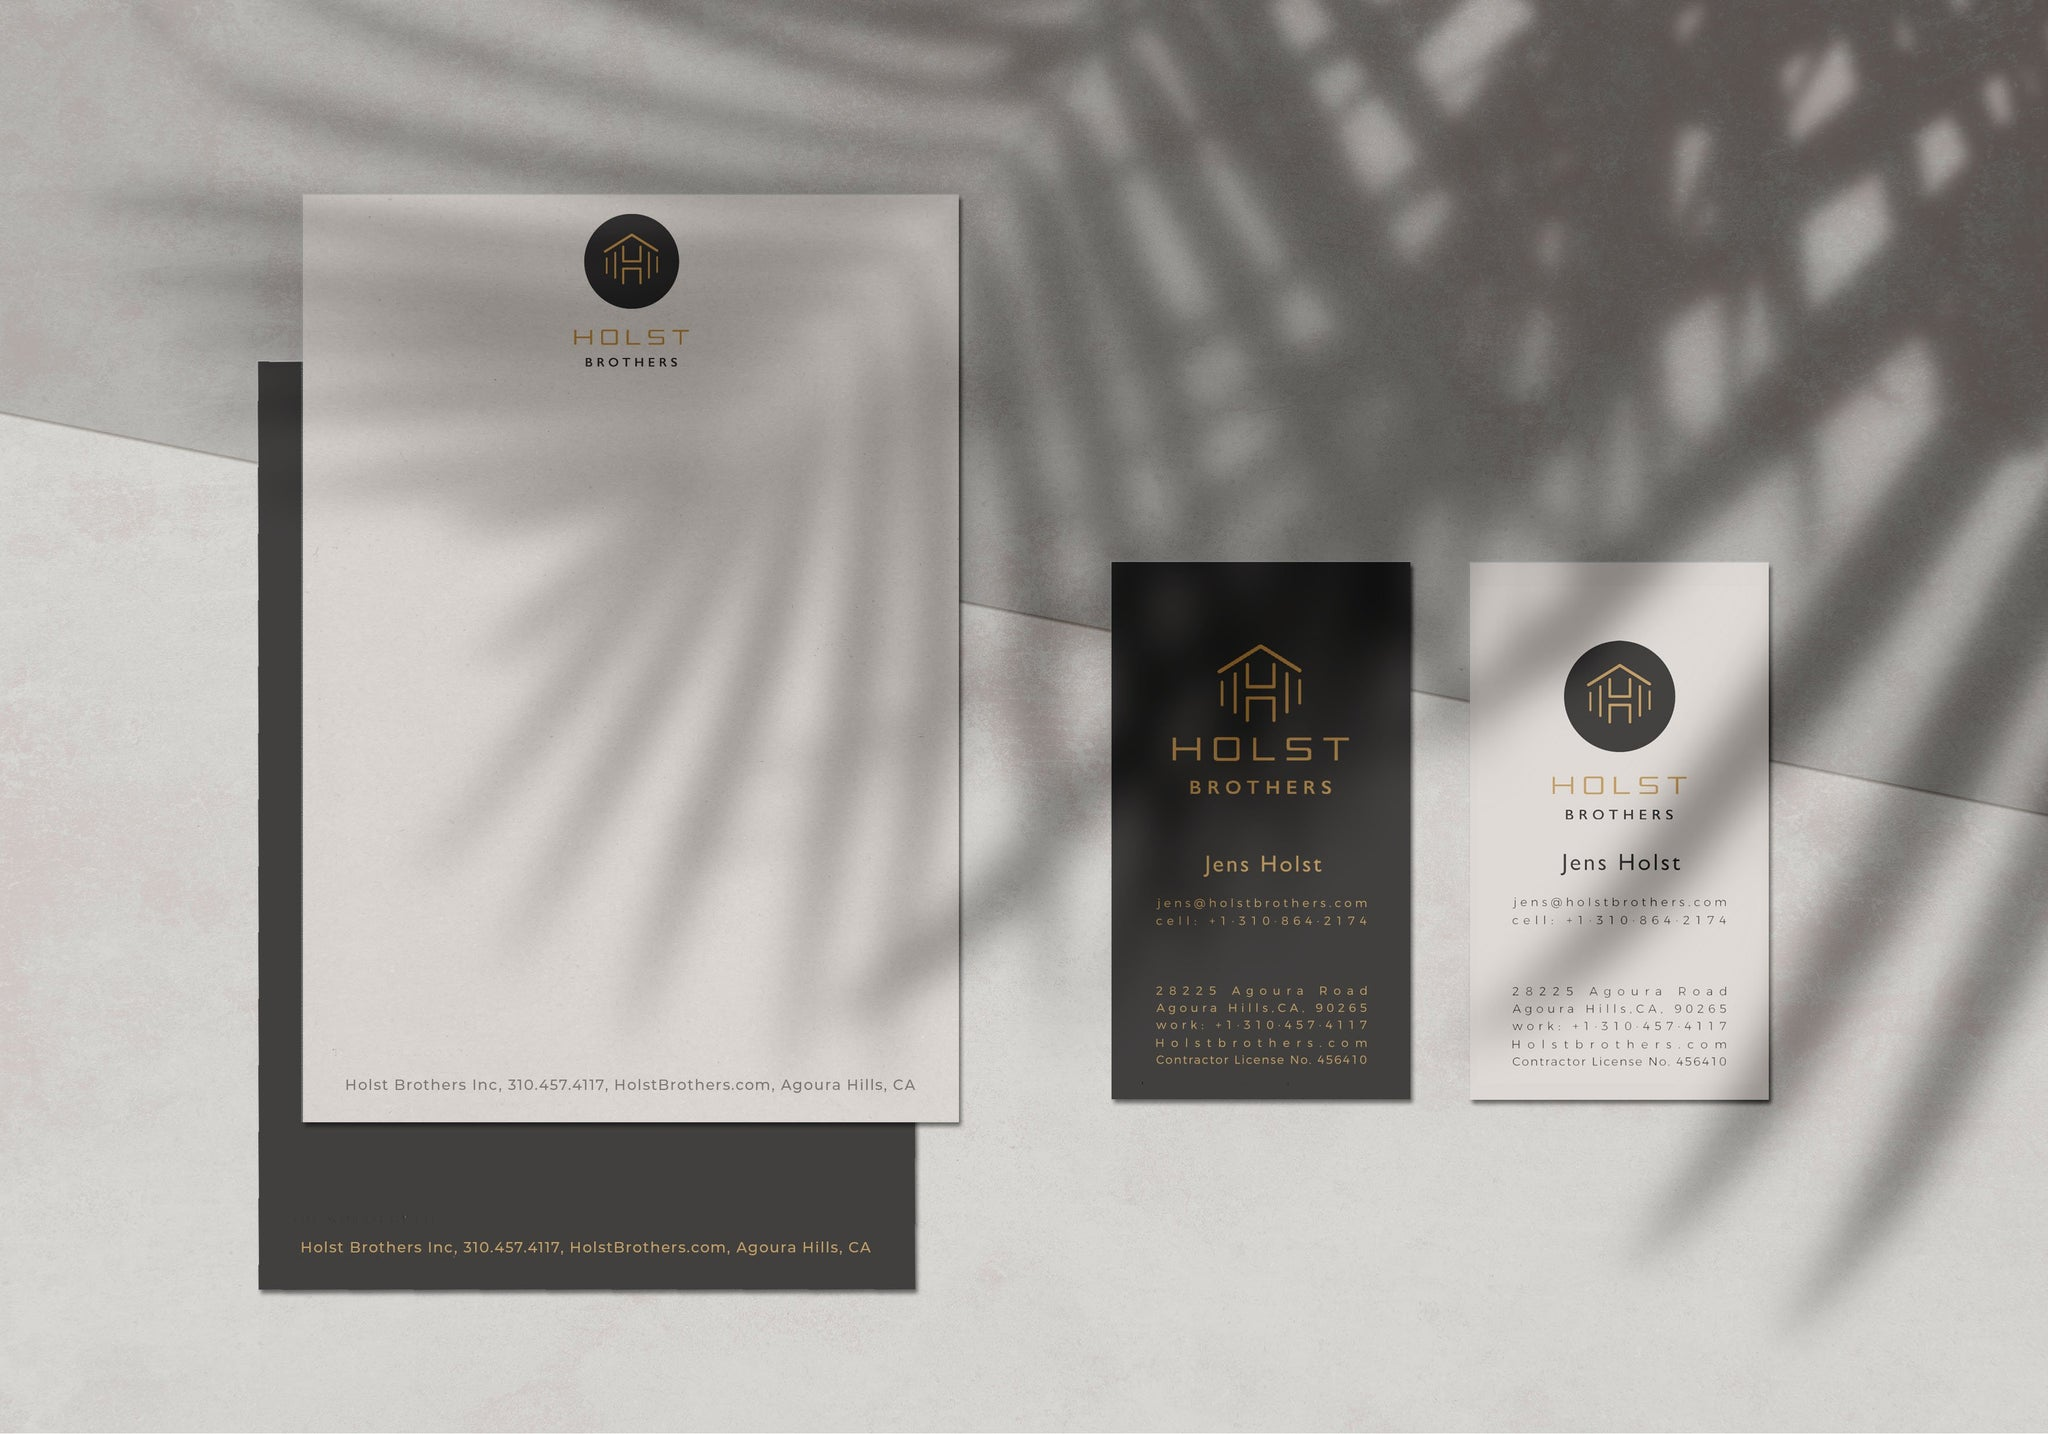 Holst Brothers by Amber Seagraves Design Studio Web Design Ecommerce Design Branding Design Logo Design Graphic Design Product Design Lifestyle Companies Creative Agency Los Angeles St. Louis Saint Louis